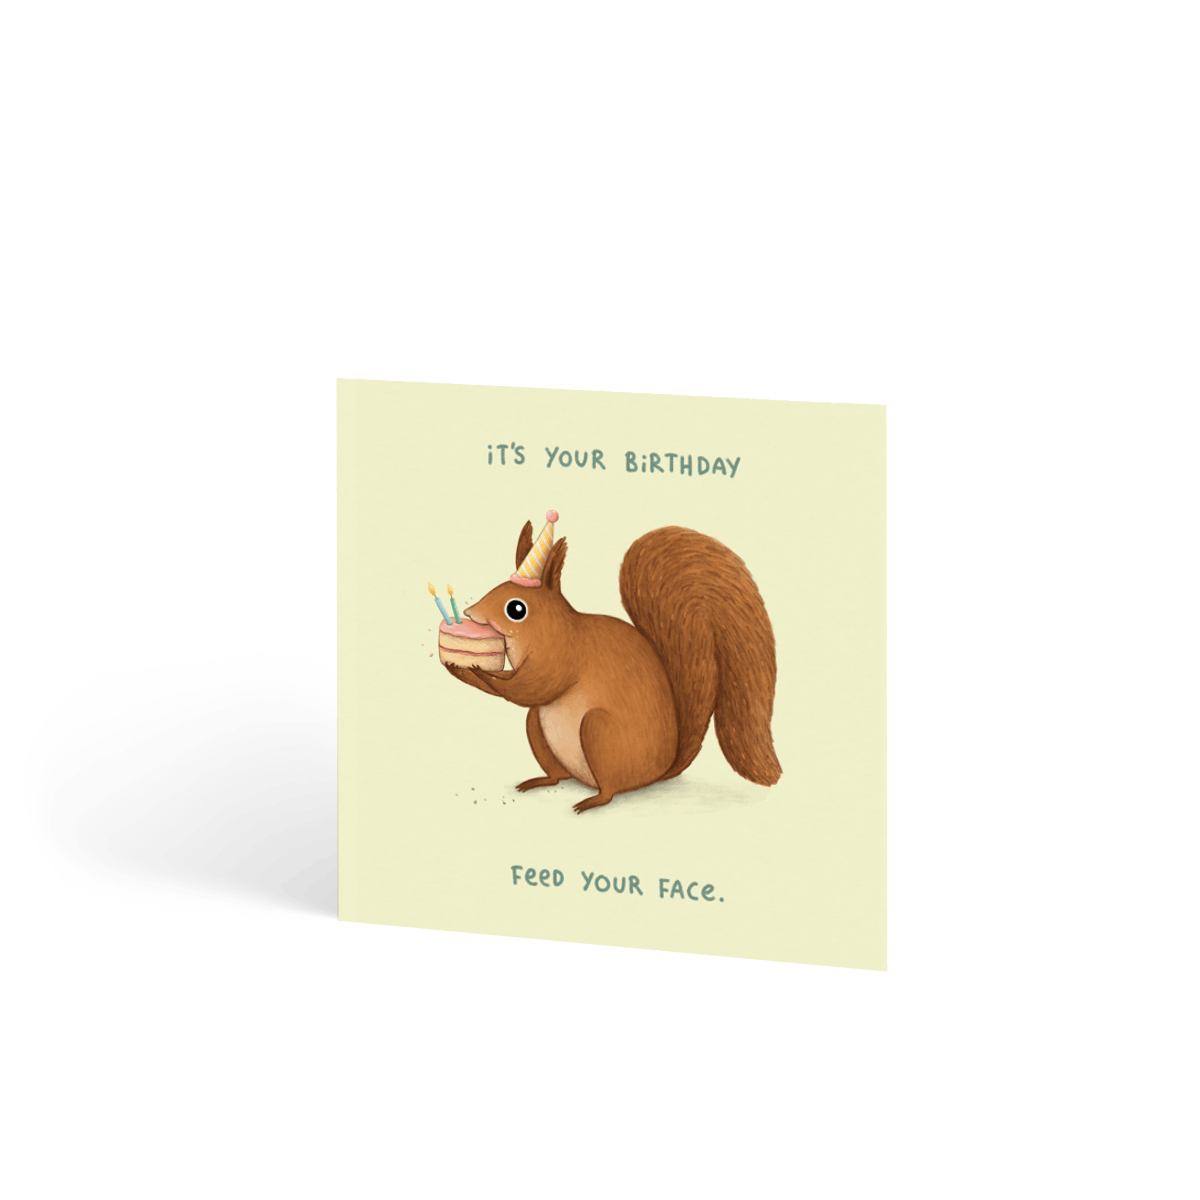 Https%3a%2f%2fwww.papier.com%2fproduct image%2f79641%2f16%2fbirthday squirrel 18808 front 1560775064.png?ixlib=rb 1.1